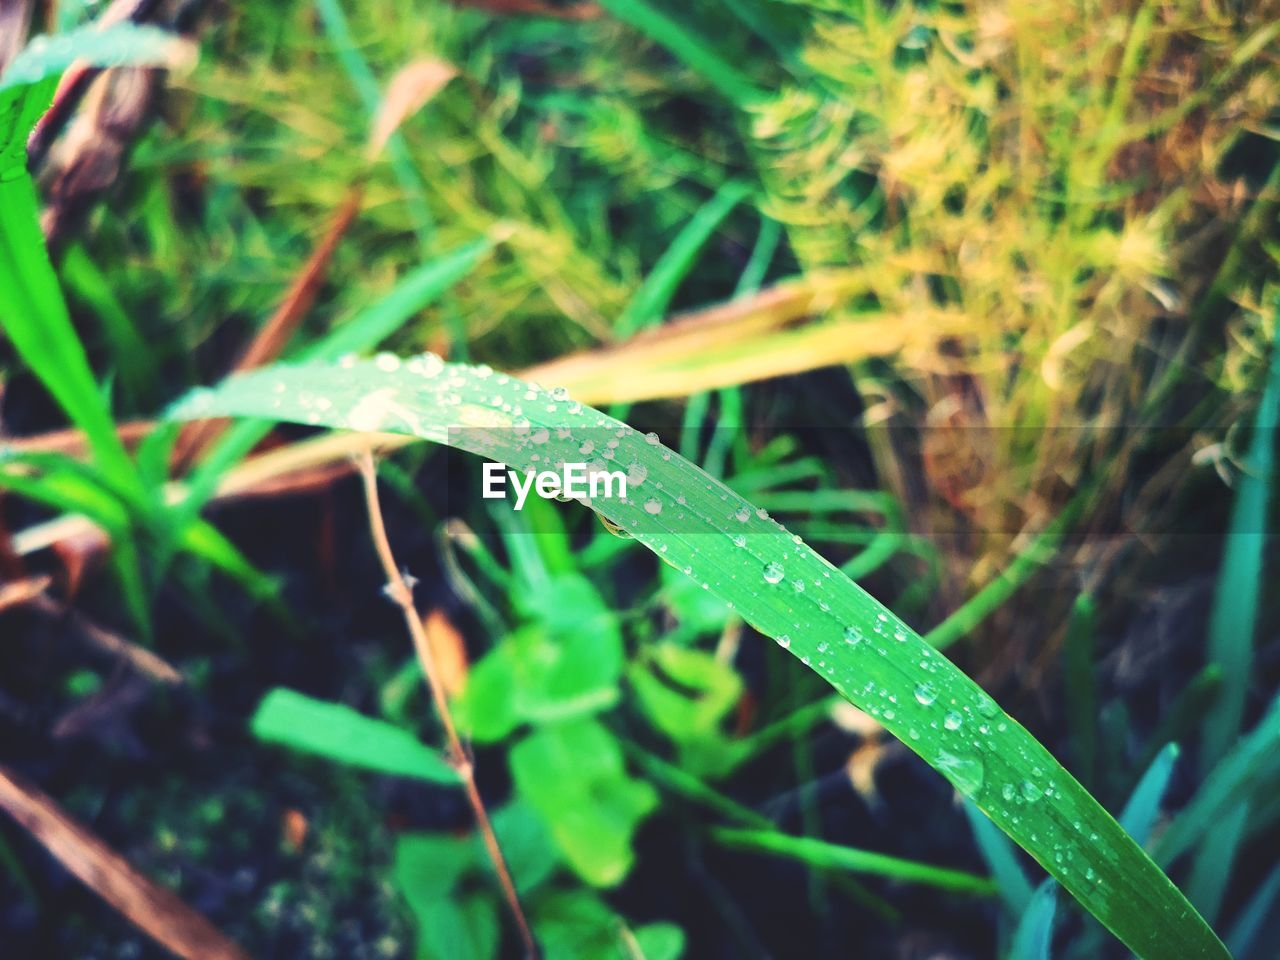 green color, plant, growth, water, wet, nature, drop, close-up, leaf, plant part, grass, blade of grass, no people, day, animals in the wild, one animal, animal themes, animal wildlife, outdoors, dew, rain, raindrop, purity